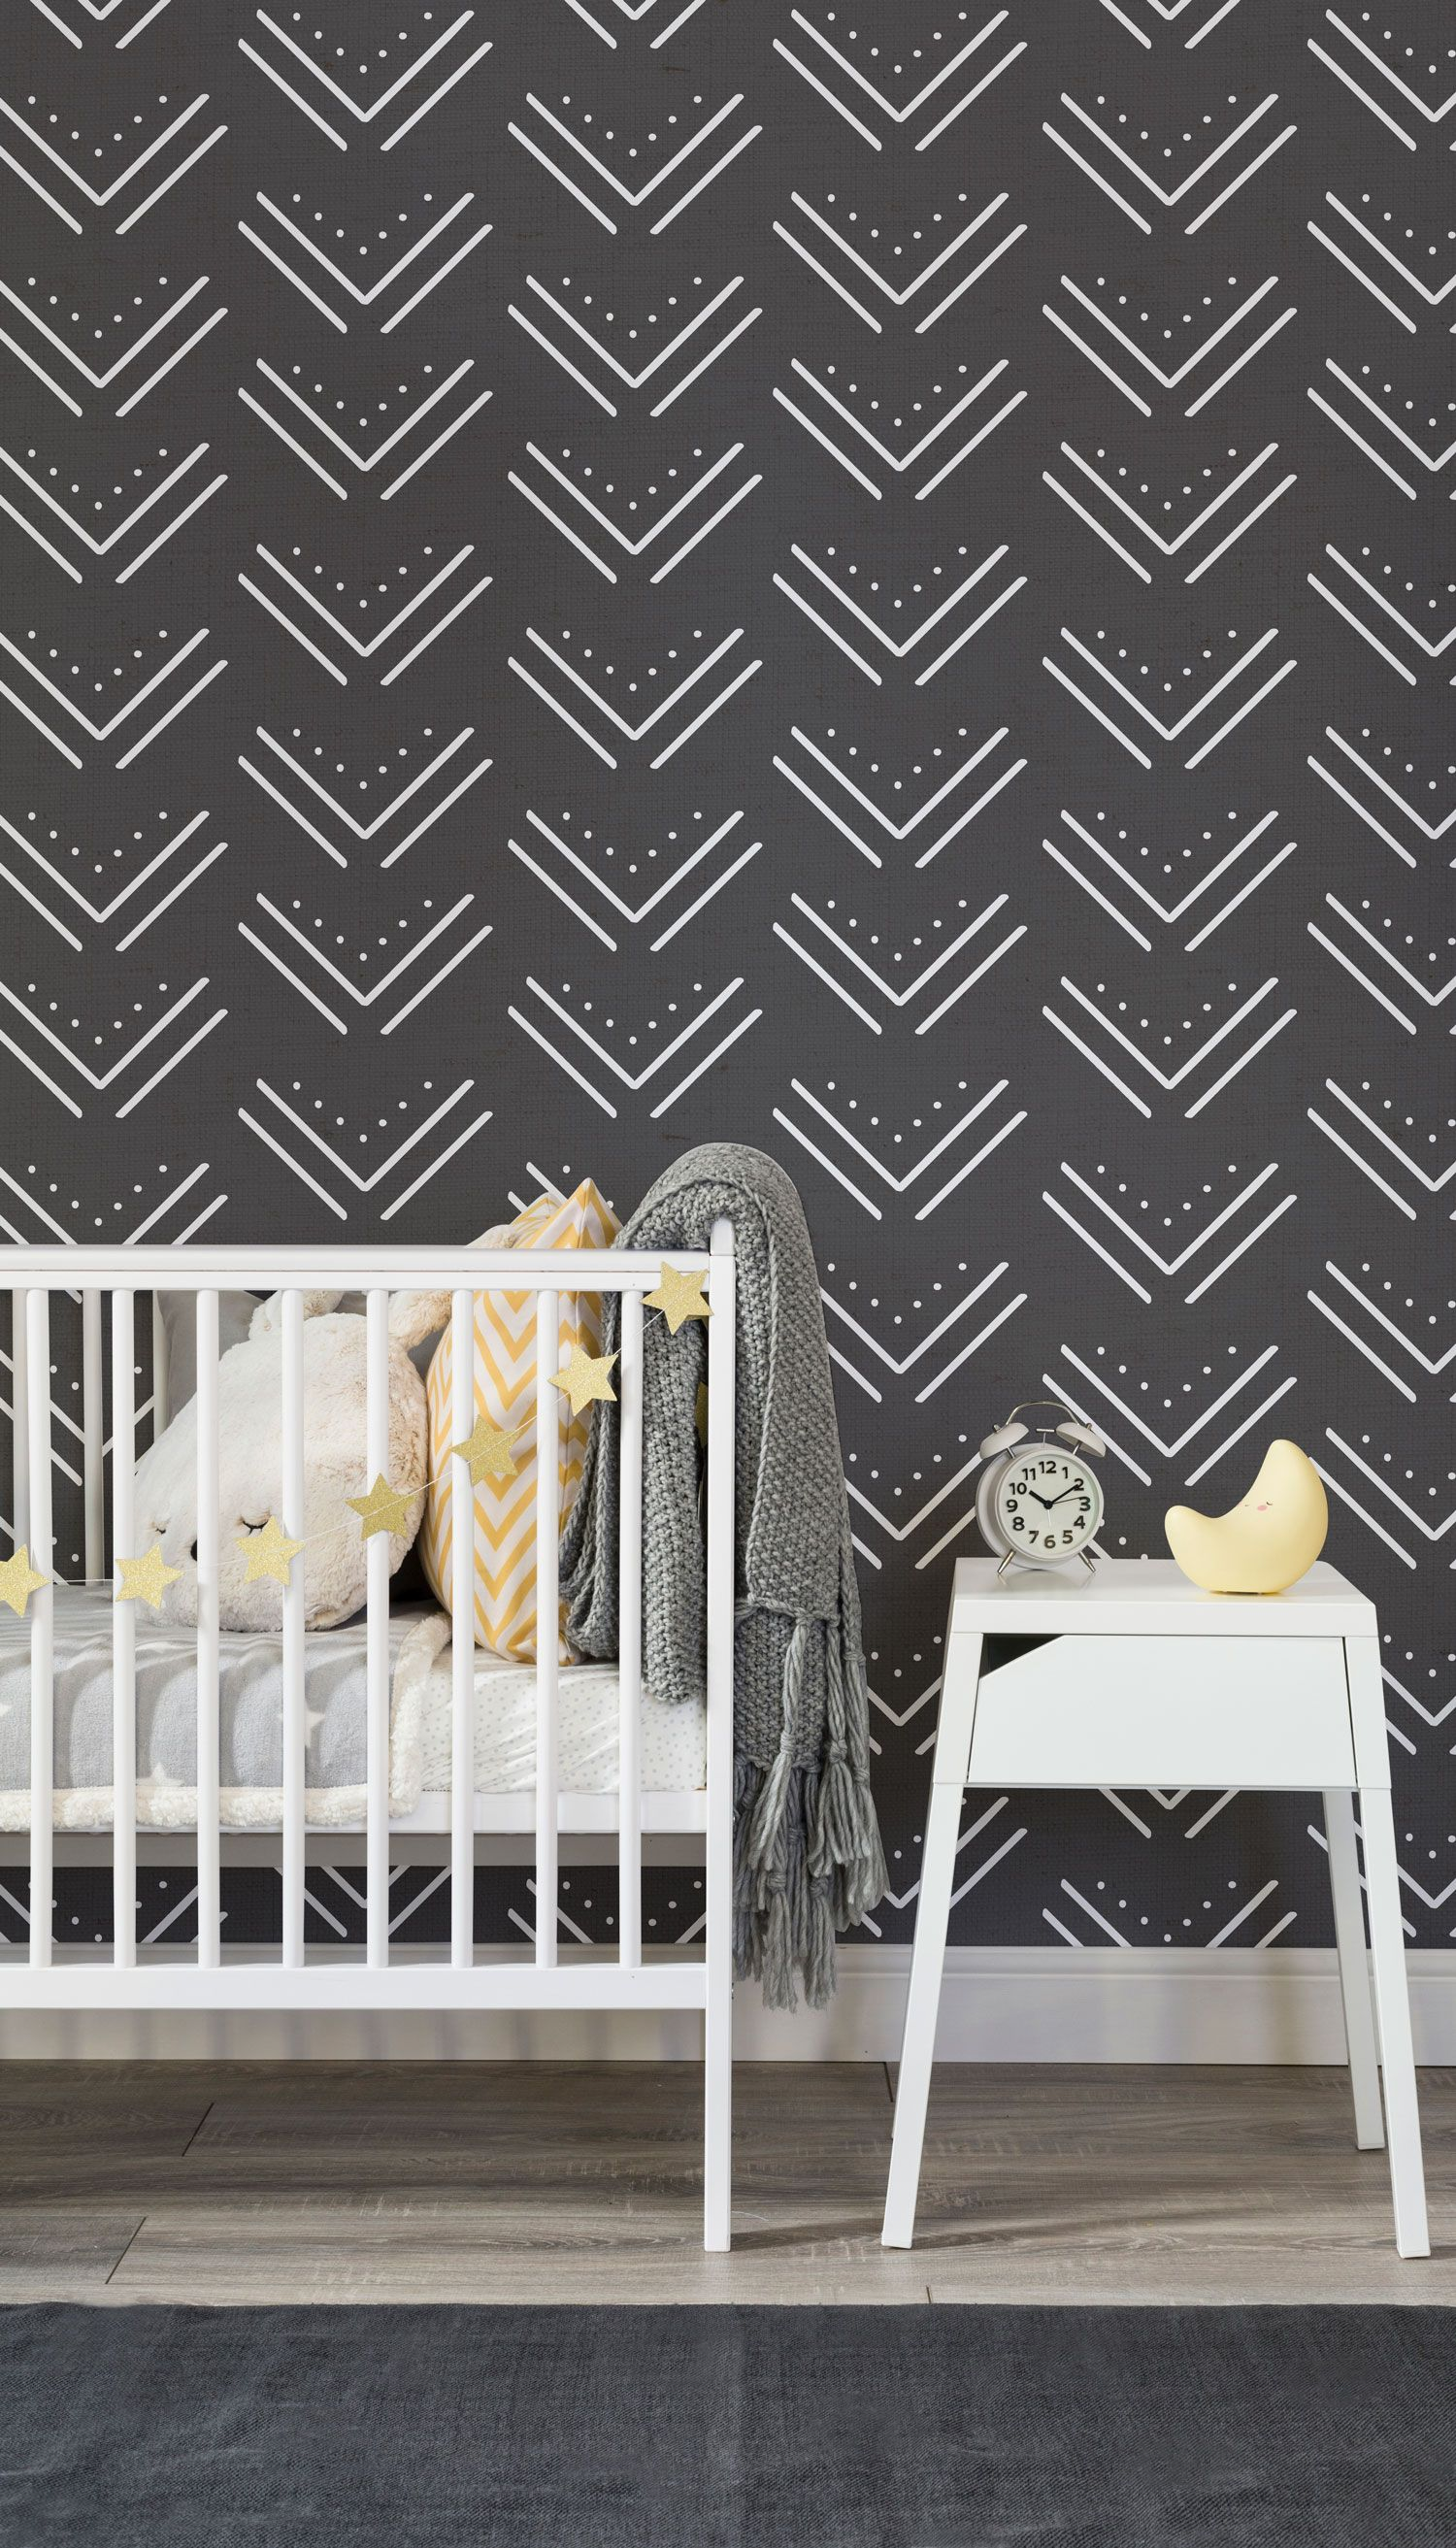 On the lookout for nursery wallpaper ideas this tribal inspired wallpaper design combines a decorative repeated pattern with a monochrome palette